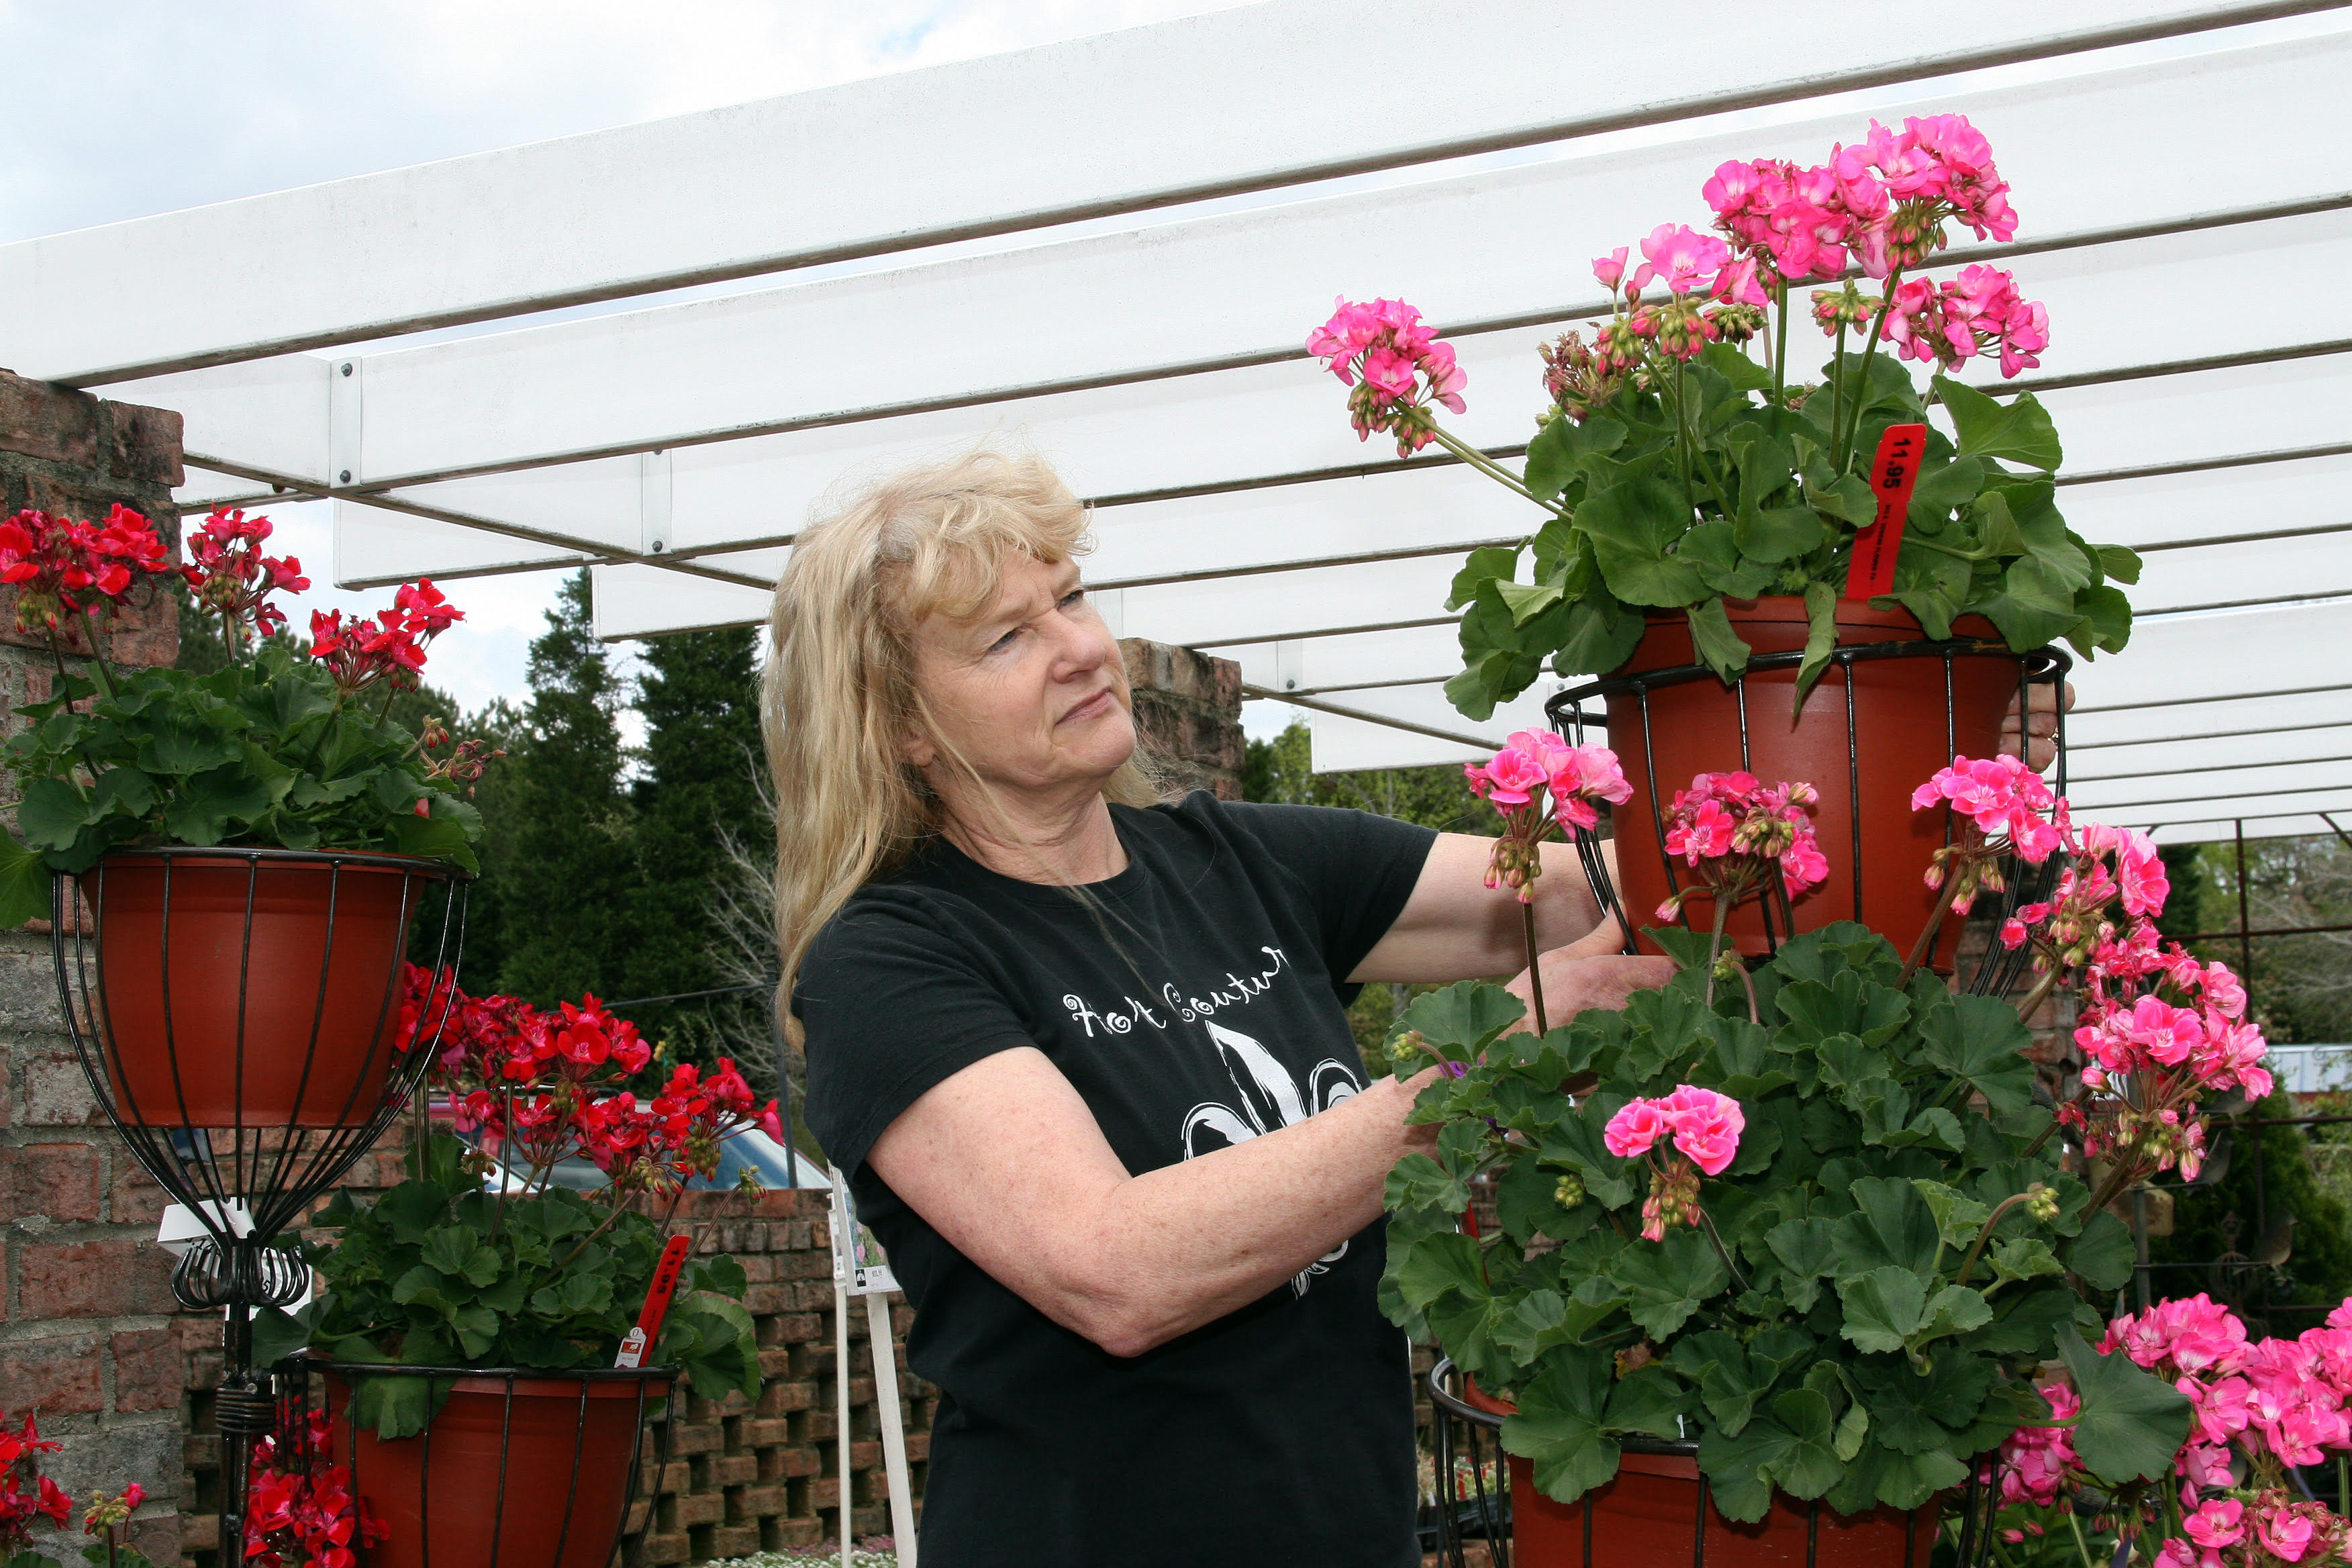 Gail Foushee setting out flower pots